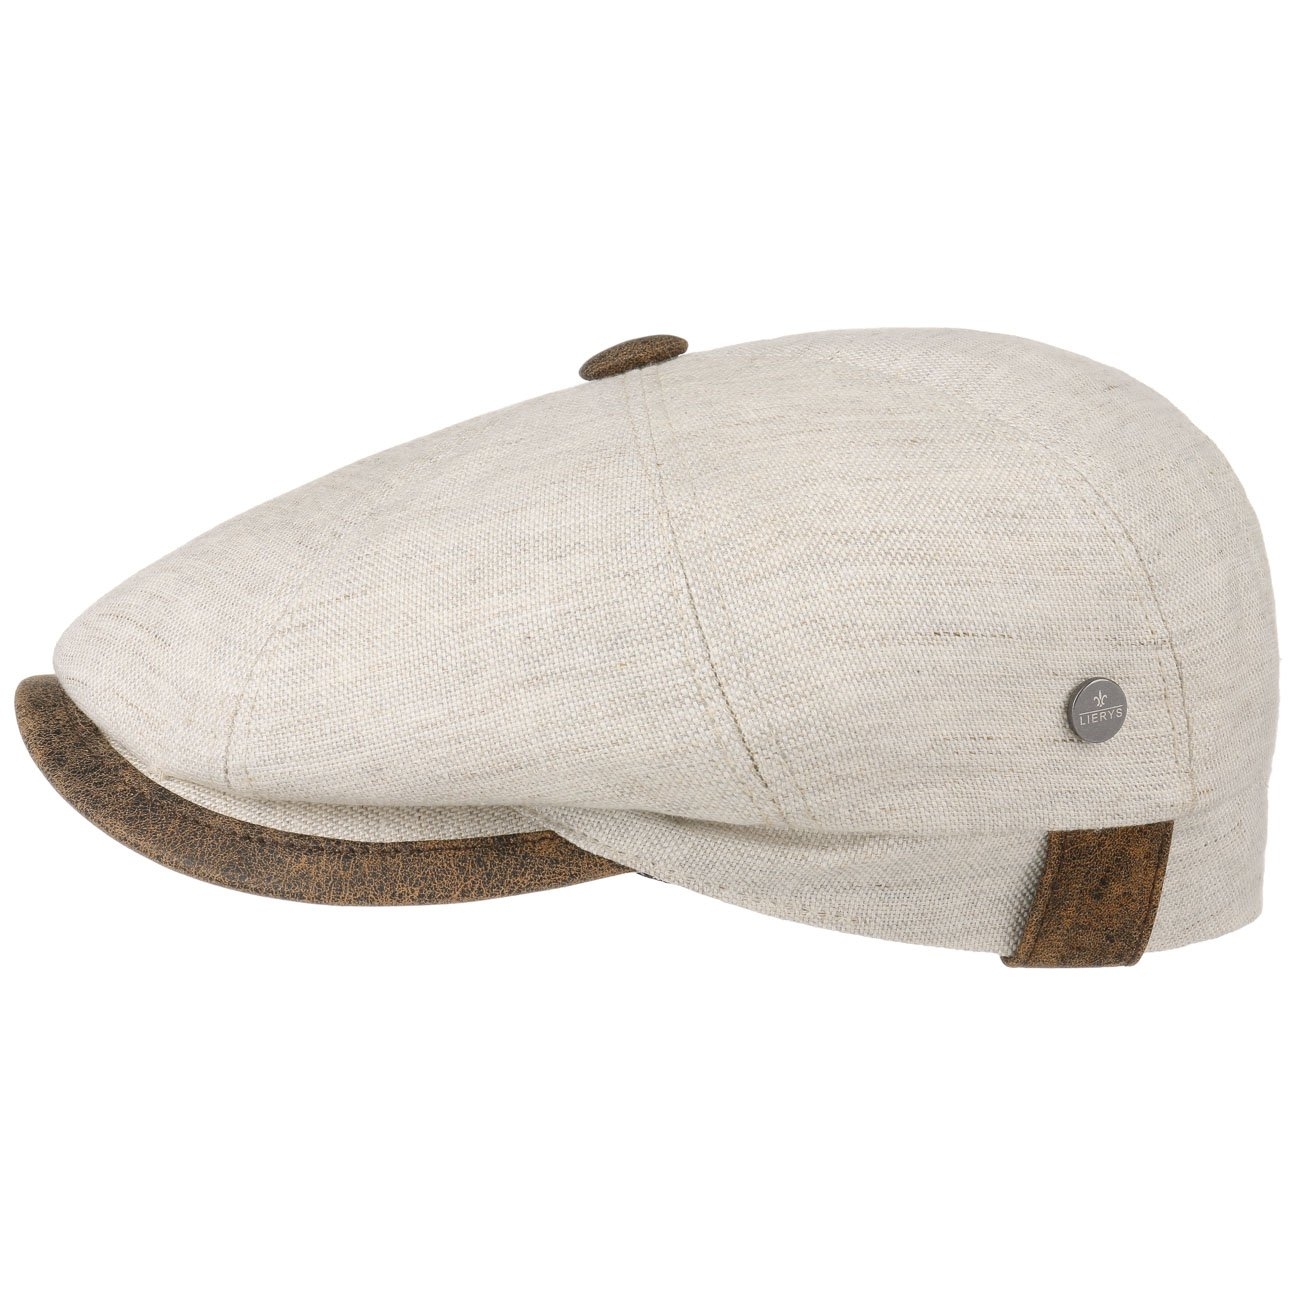 80b99149f Lierys City Leather Piping Linen Cap Women/Men | Made in Italy at ...